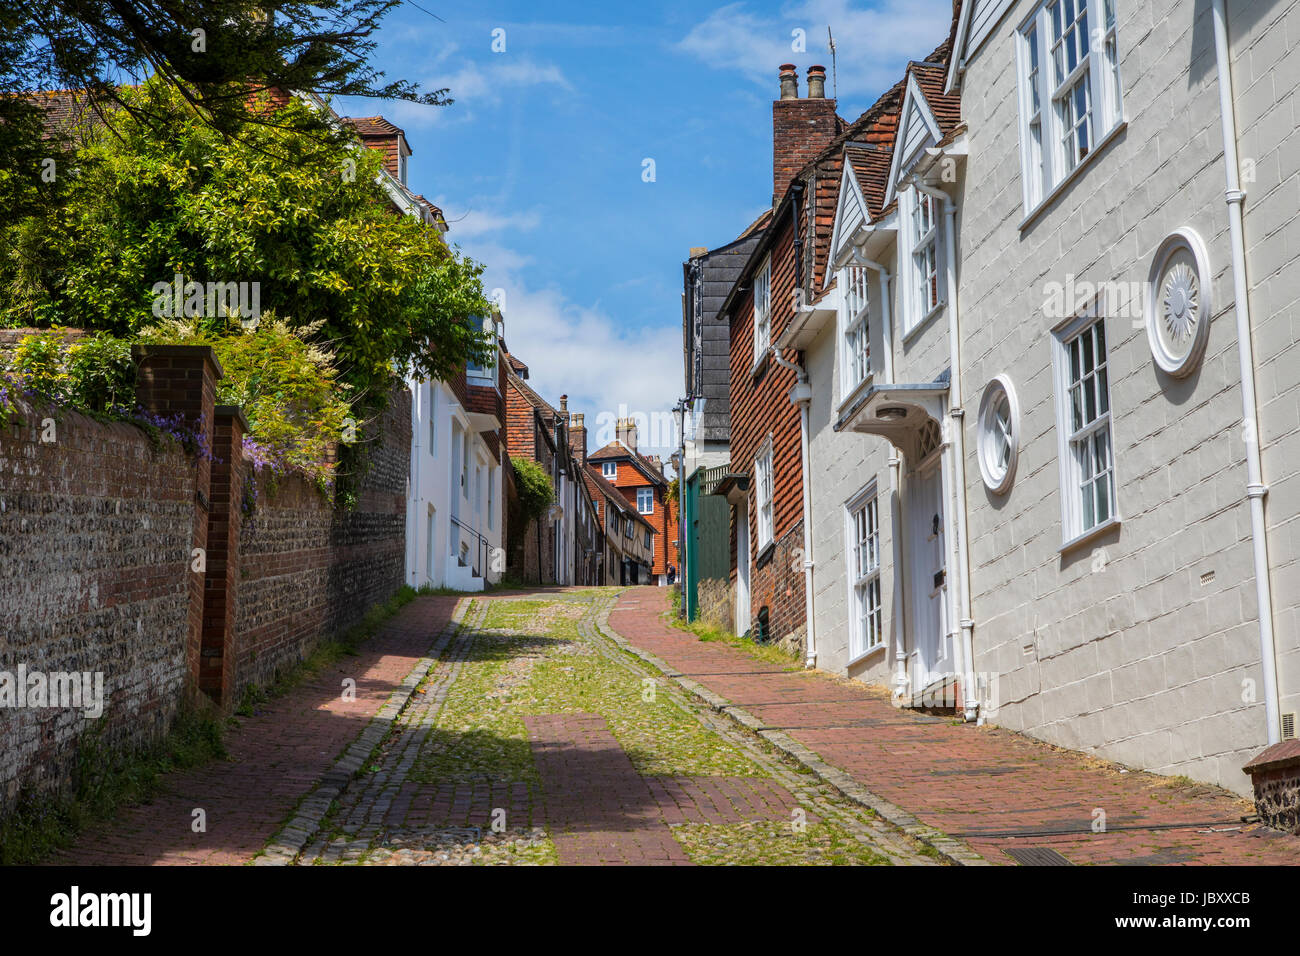 A view of the pretty Keere Street in the historic town of Lewes in East Sussex, UK. Stock Photo